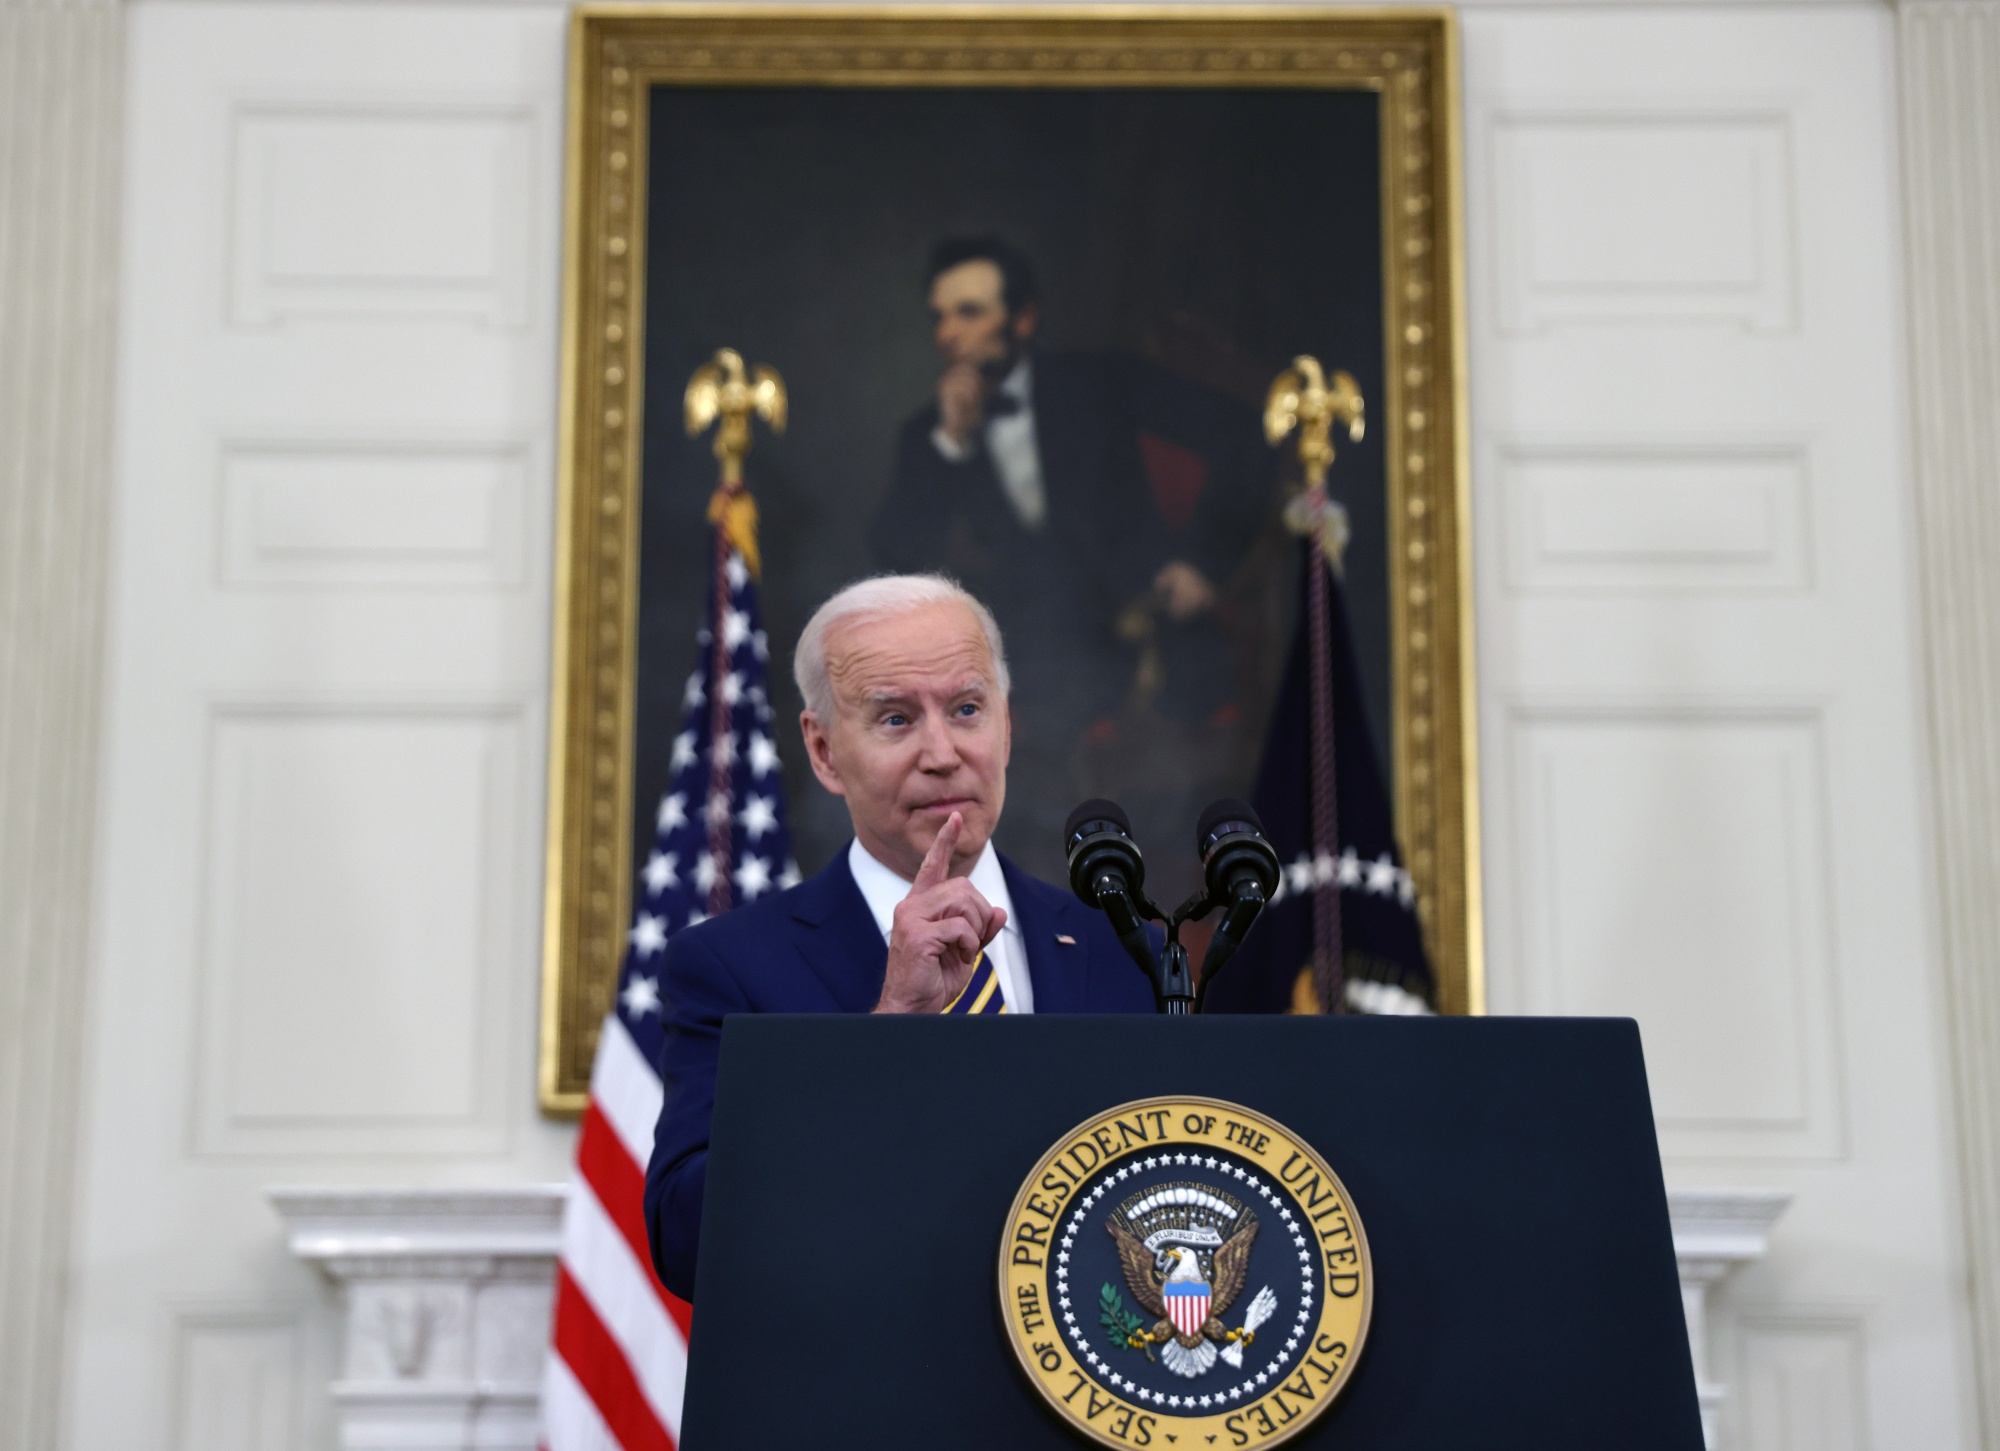 President Biden makes comments on response to Covid-19 and vaccinations